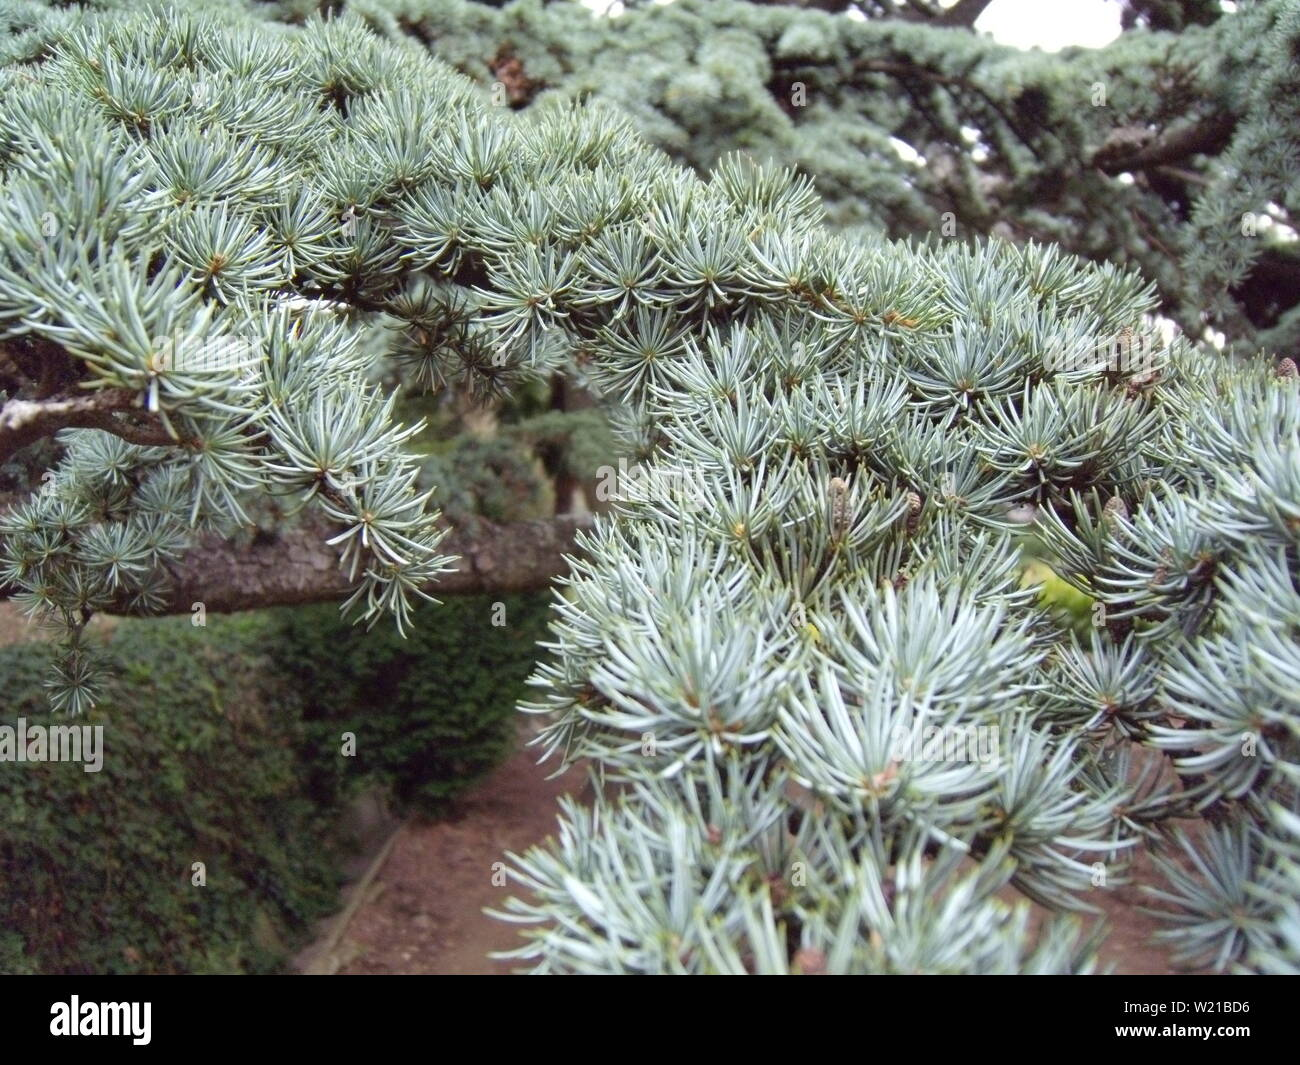 Close-up of a prickly blue spruce branch with cones. Young red fir cones on the branch. Stock Photo